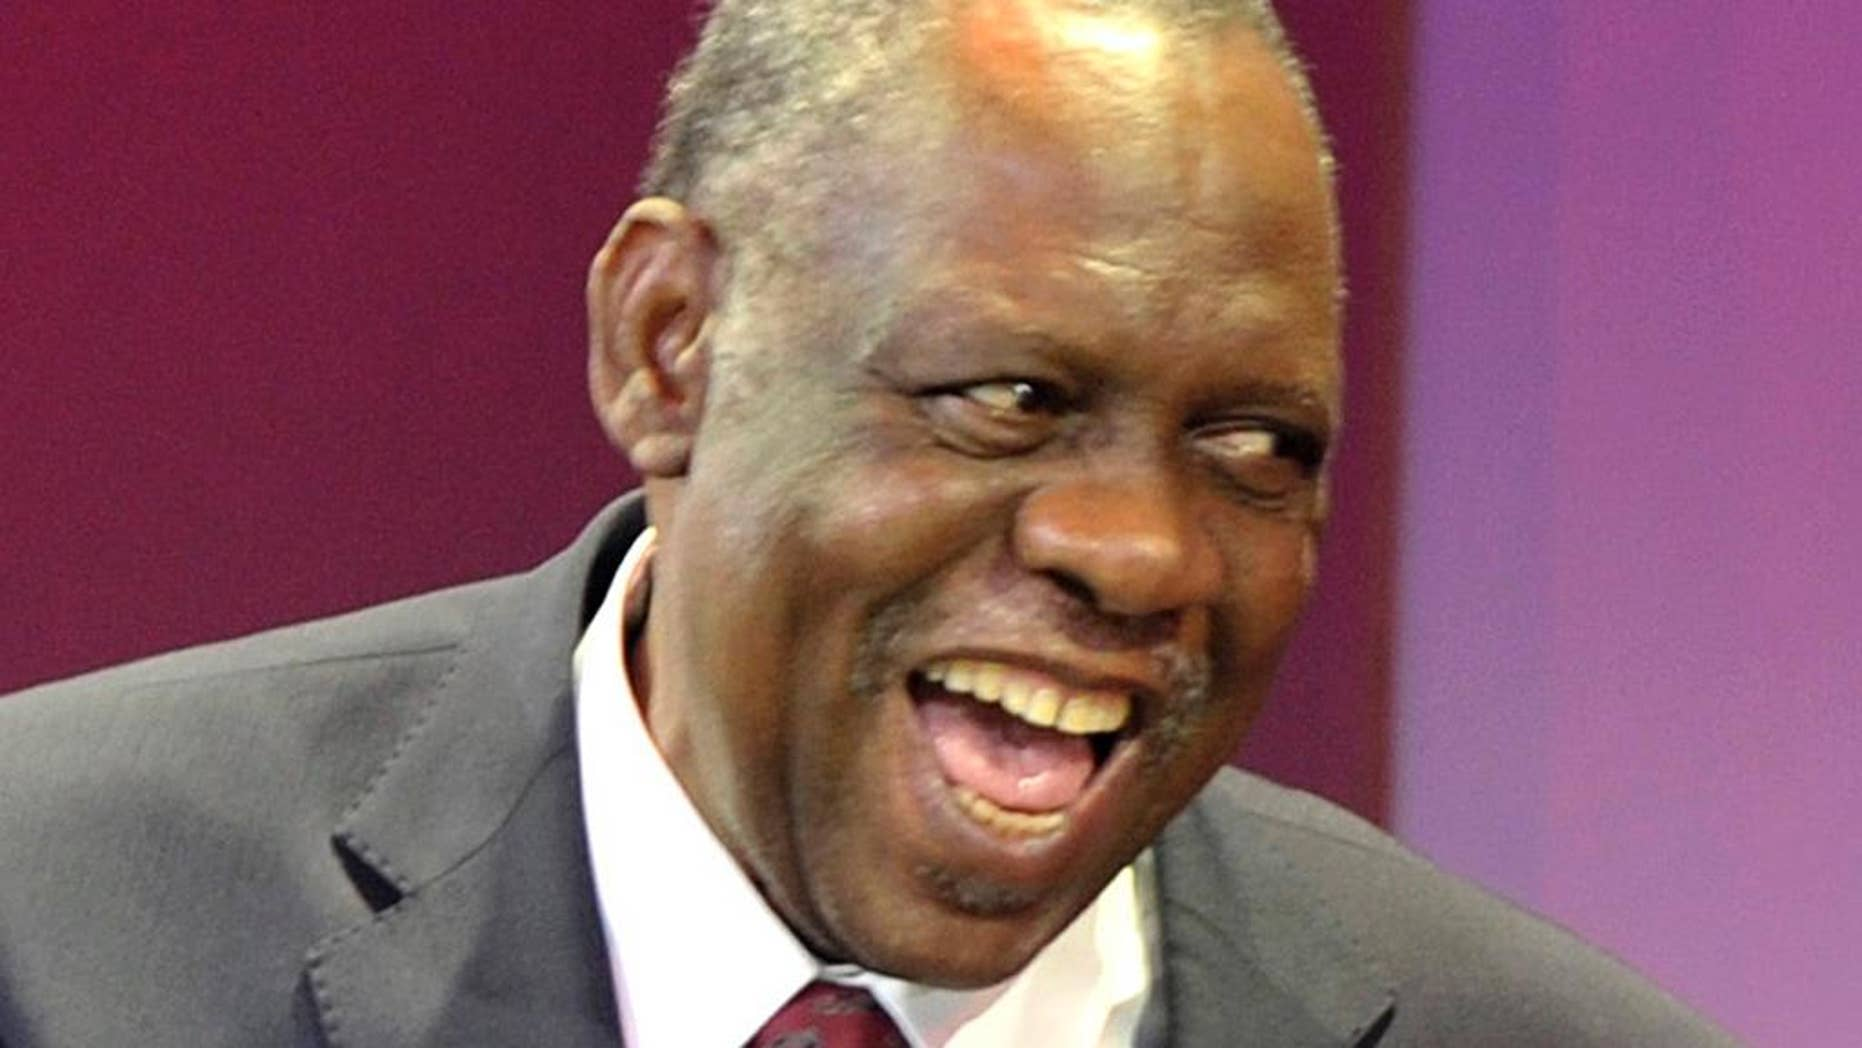 FILE - In this Wednesday Oct. 24, 2012, file photo Confederation of African Football (CAF) president  Issa Hayatou attends the final draw of the Orange Africa Cup Of Nations in Durban South Africa. FIFA said Thursday, Oct. 8, 2015 that African soccer leader Isaa Hayatou will serve as acting president.   (AP Photo)